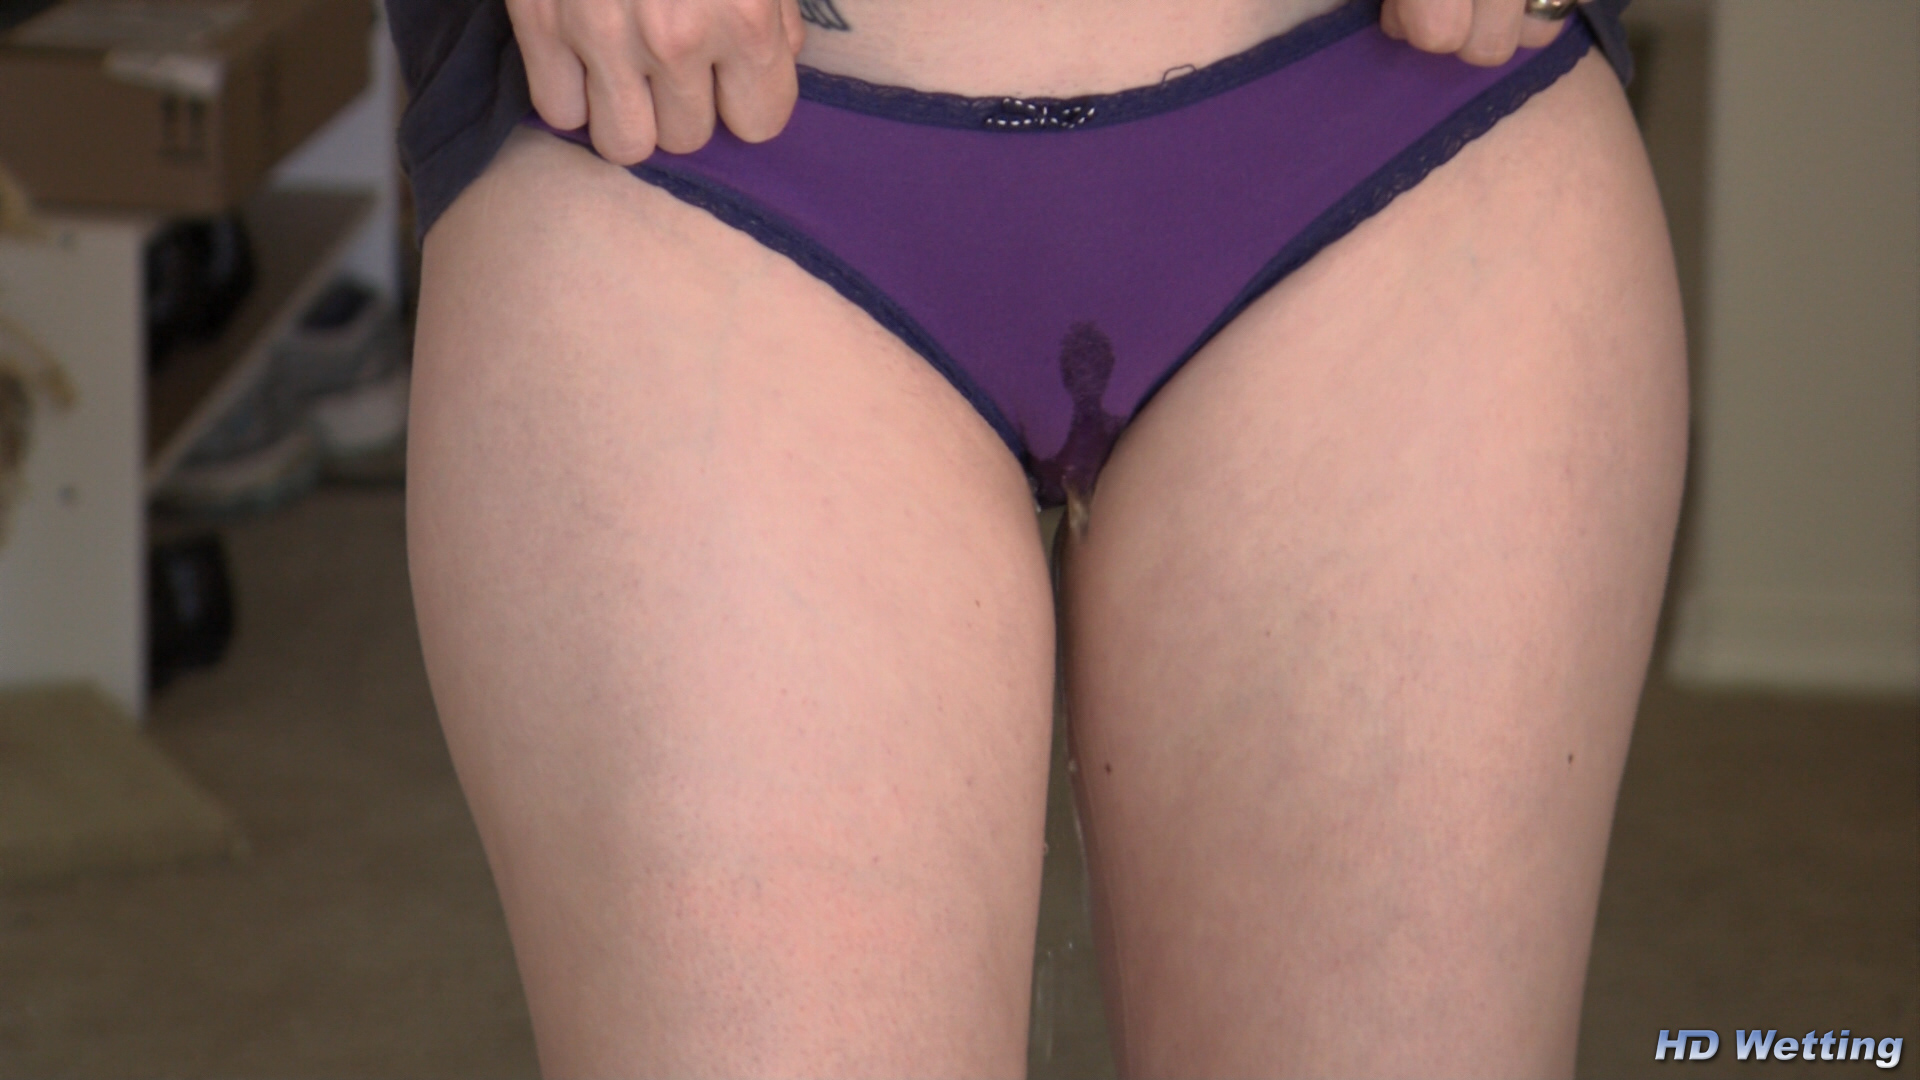 Sosha Pissing In Panties: http://www.pissing-knickers.com/images/purple-knicker-piss/index.html